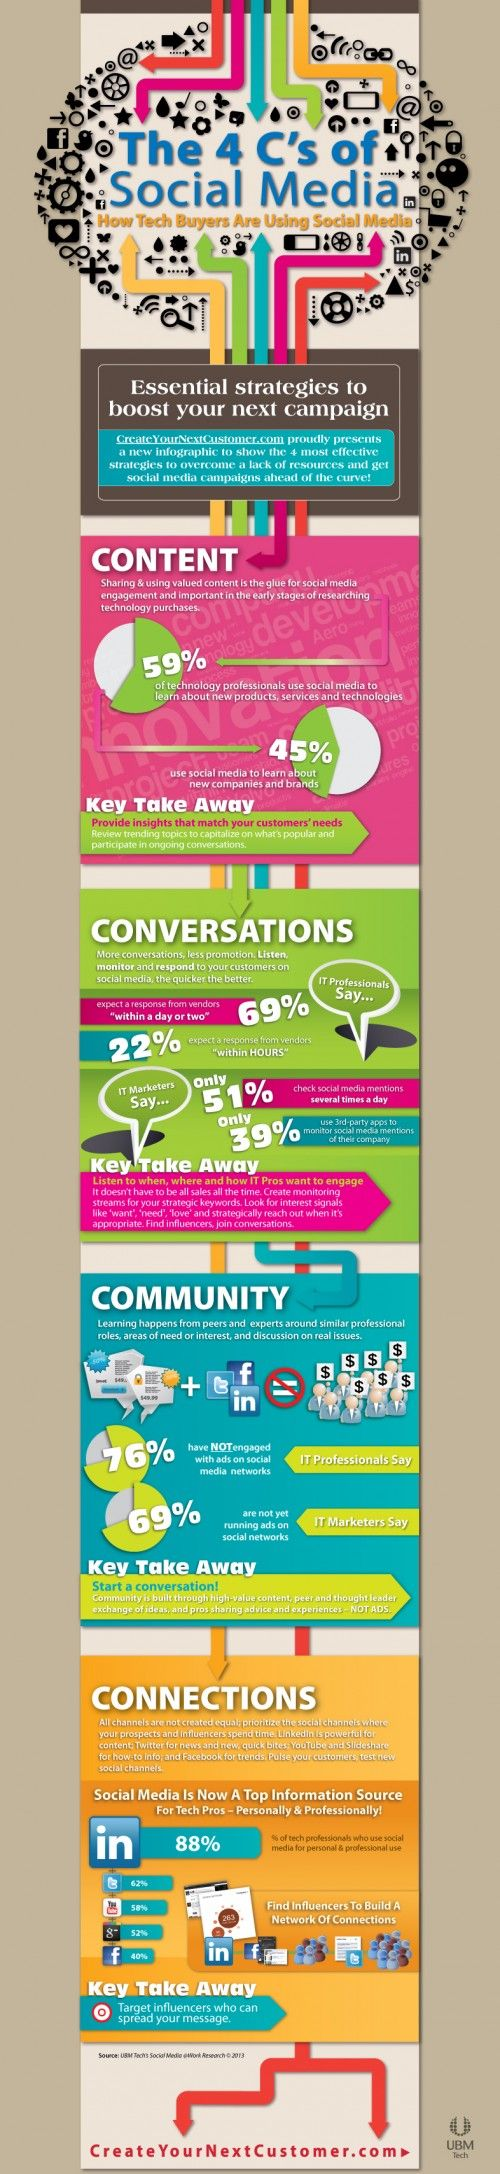 The 4 Cs of Social Media #INFOGRAPHIC